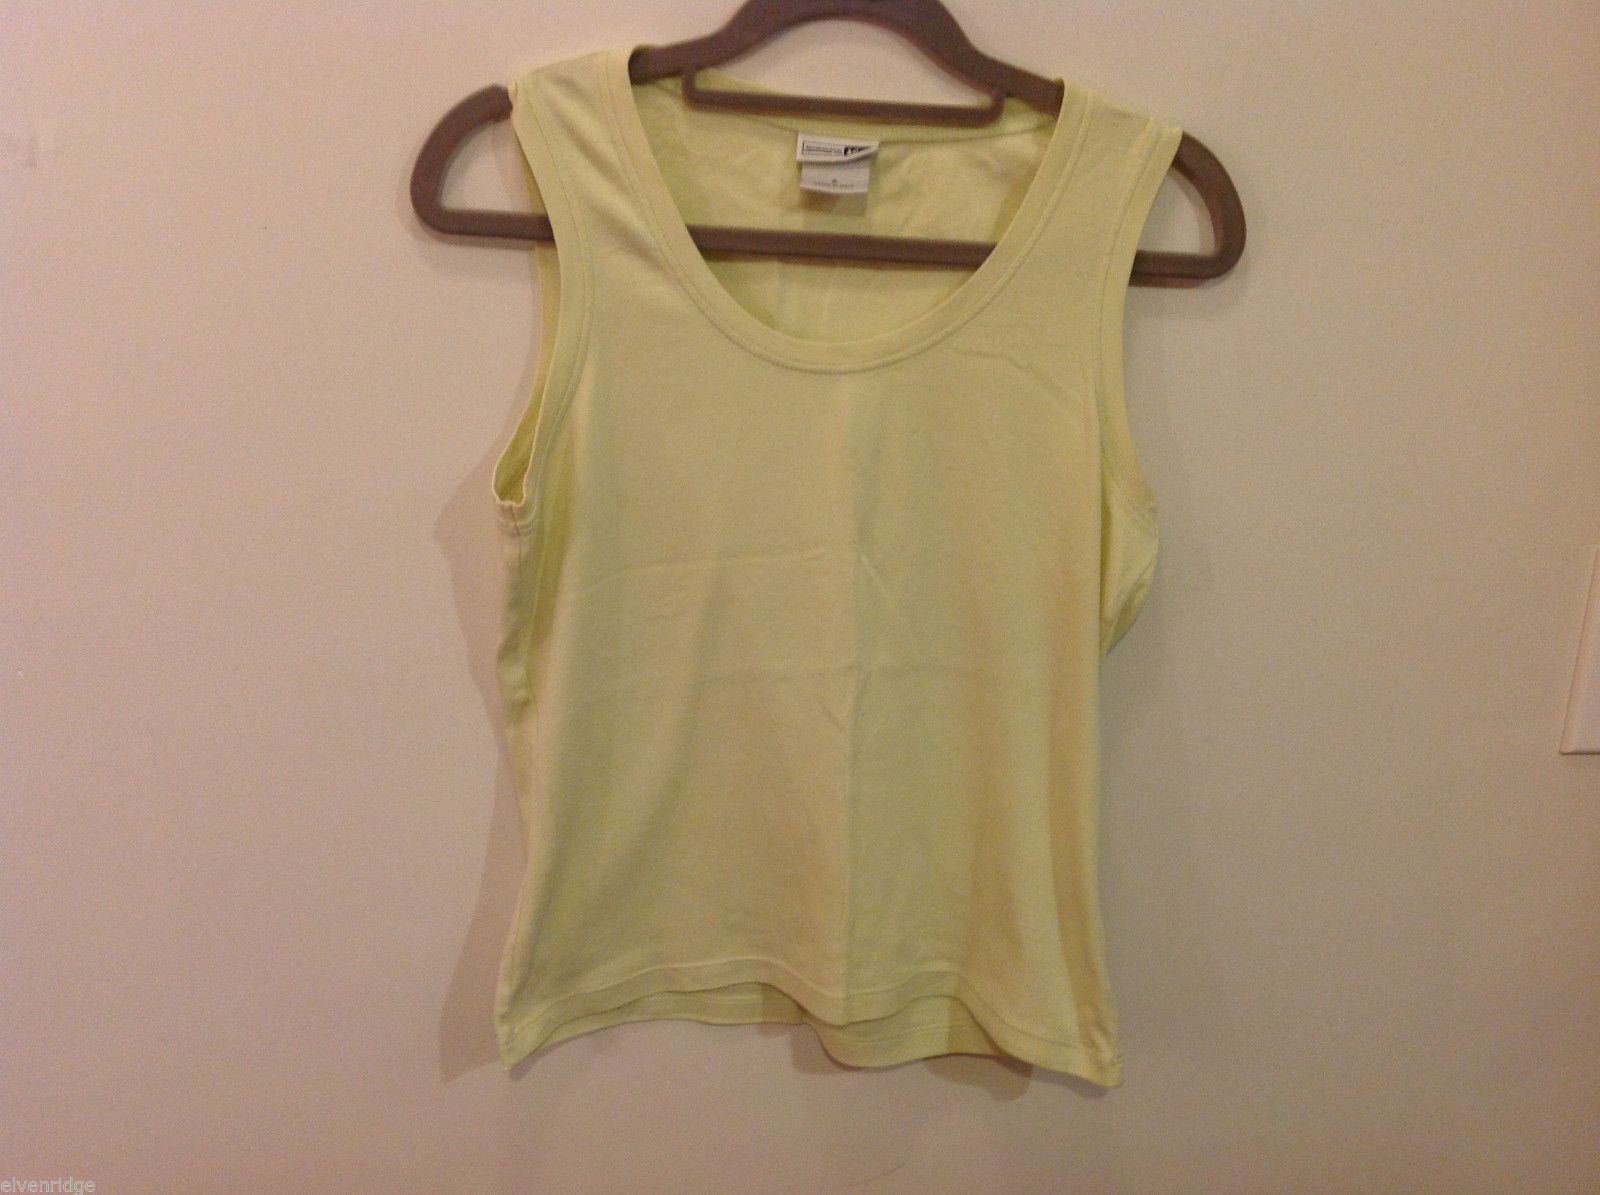 REI Womans Sleeveless Light Green Stretchable Cotton Tank Top Blouse, Size S